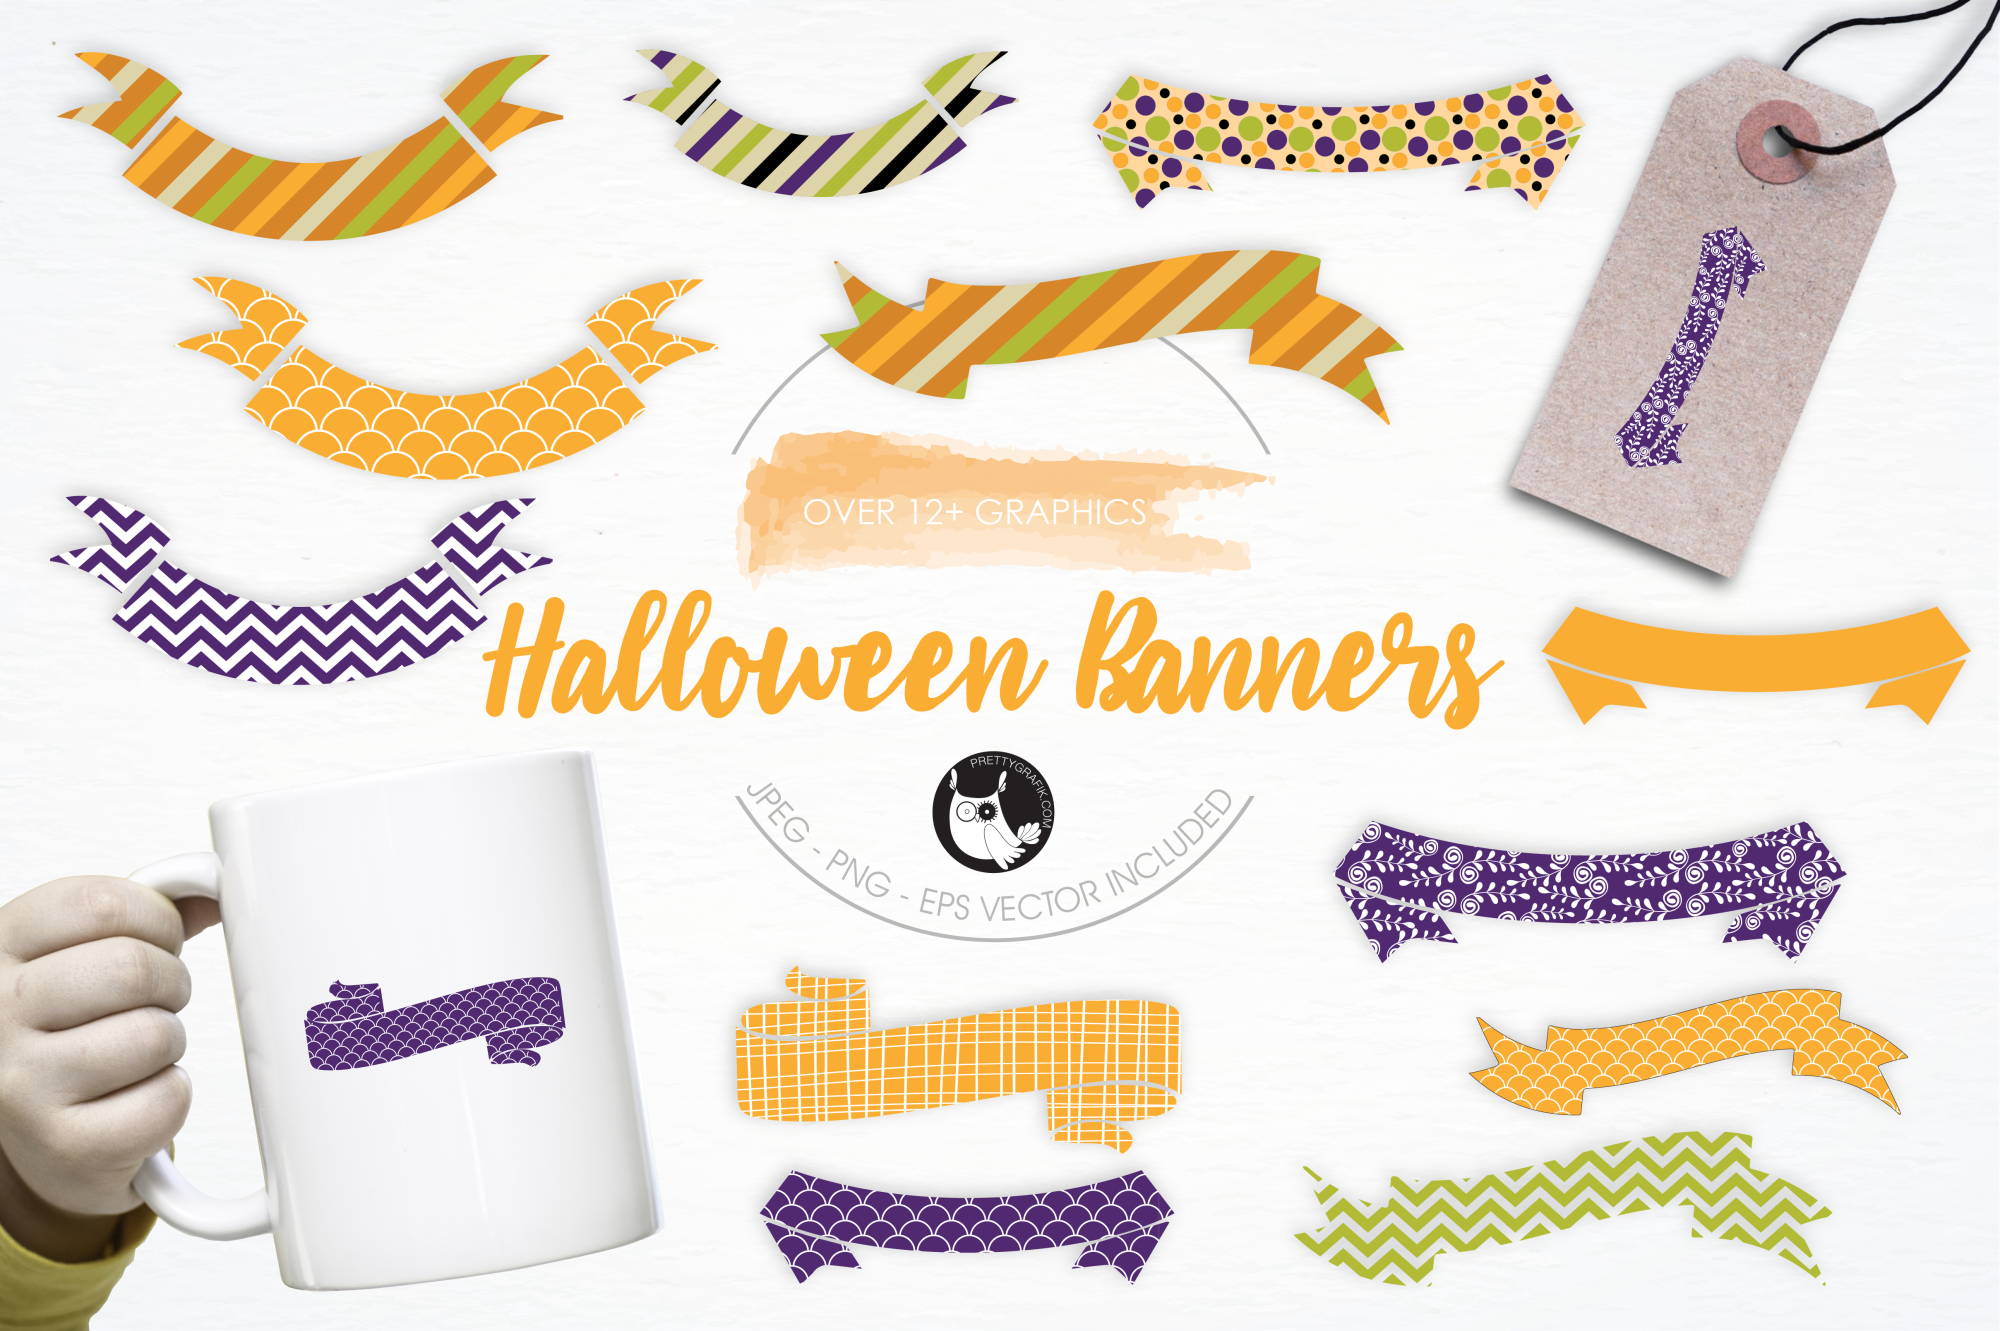 Halloween Banners graphics and illustrations example image 1